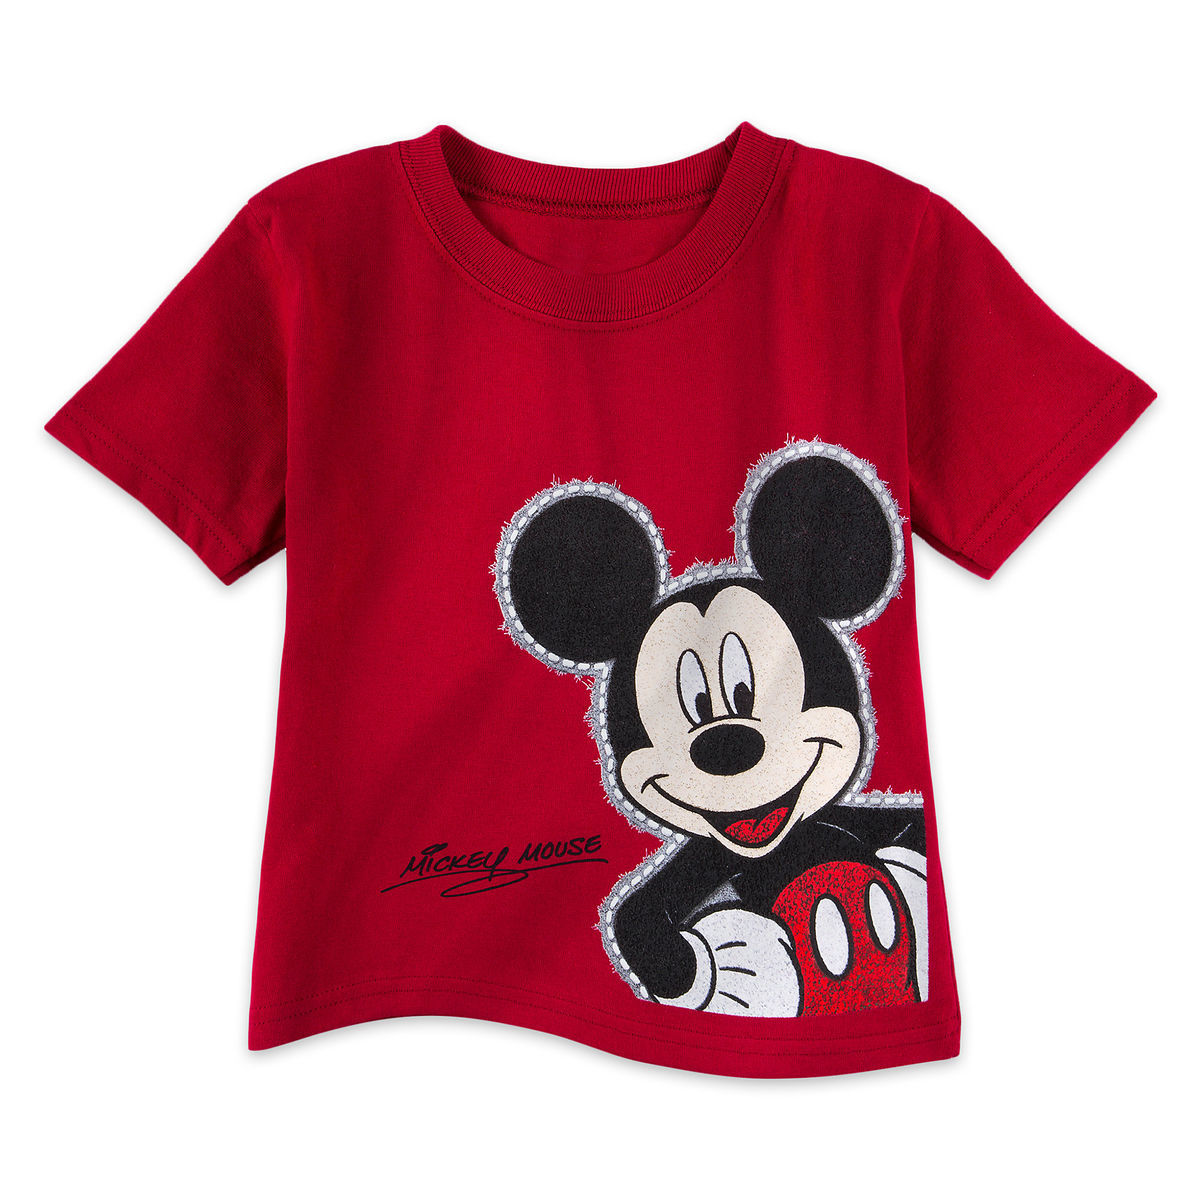 Product Image Of Mickey Mouse Outline Tee For Toddlers 1